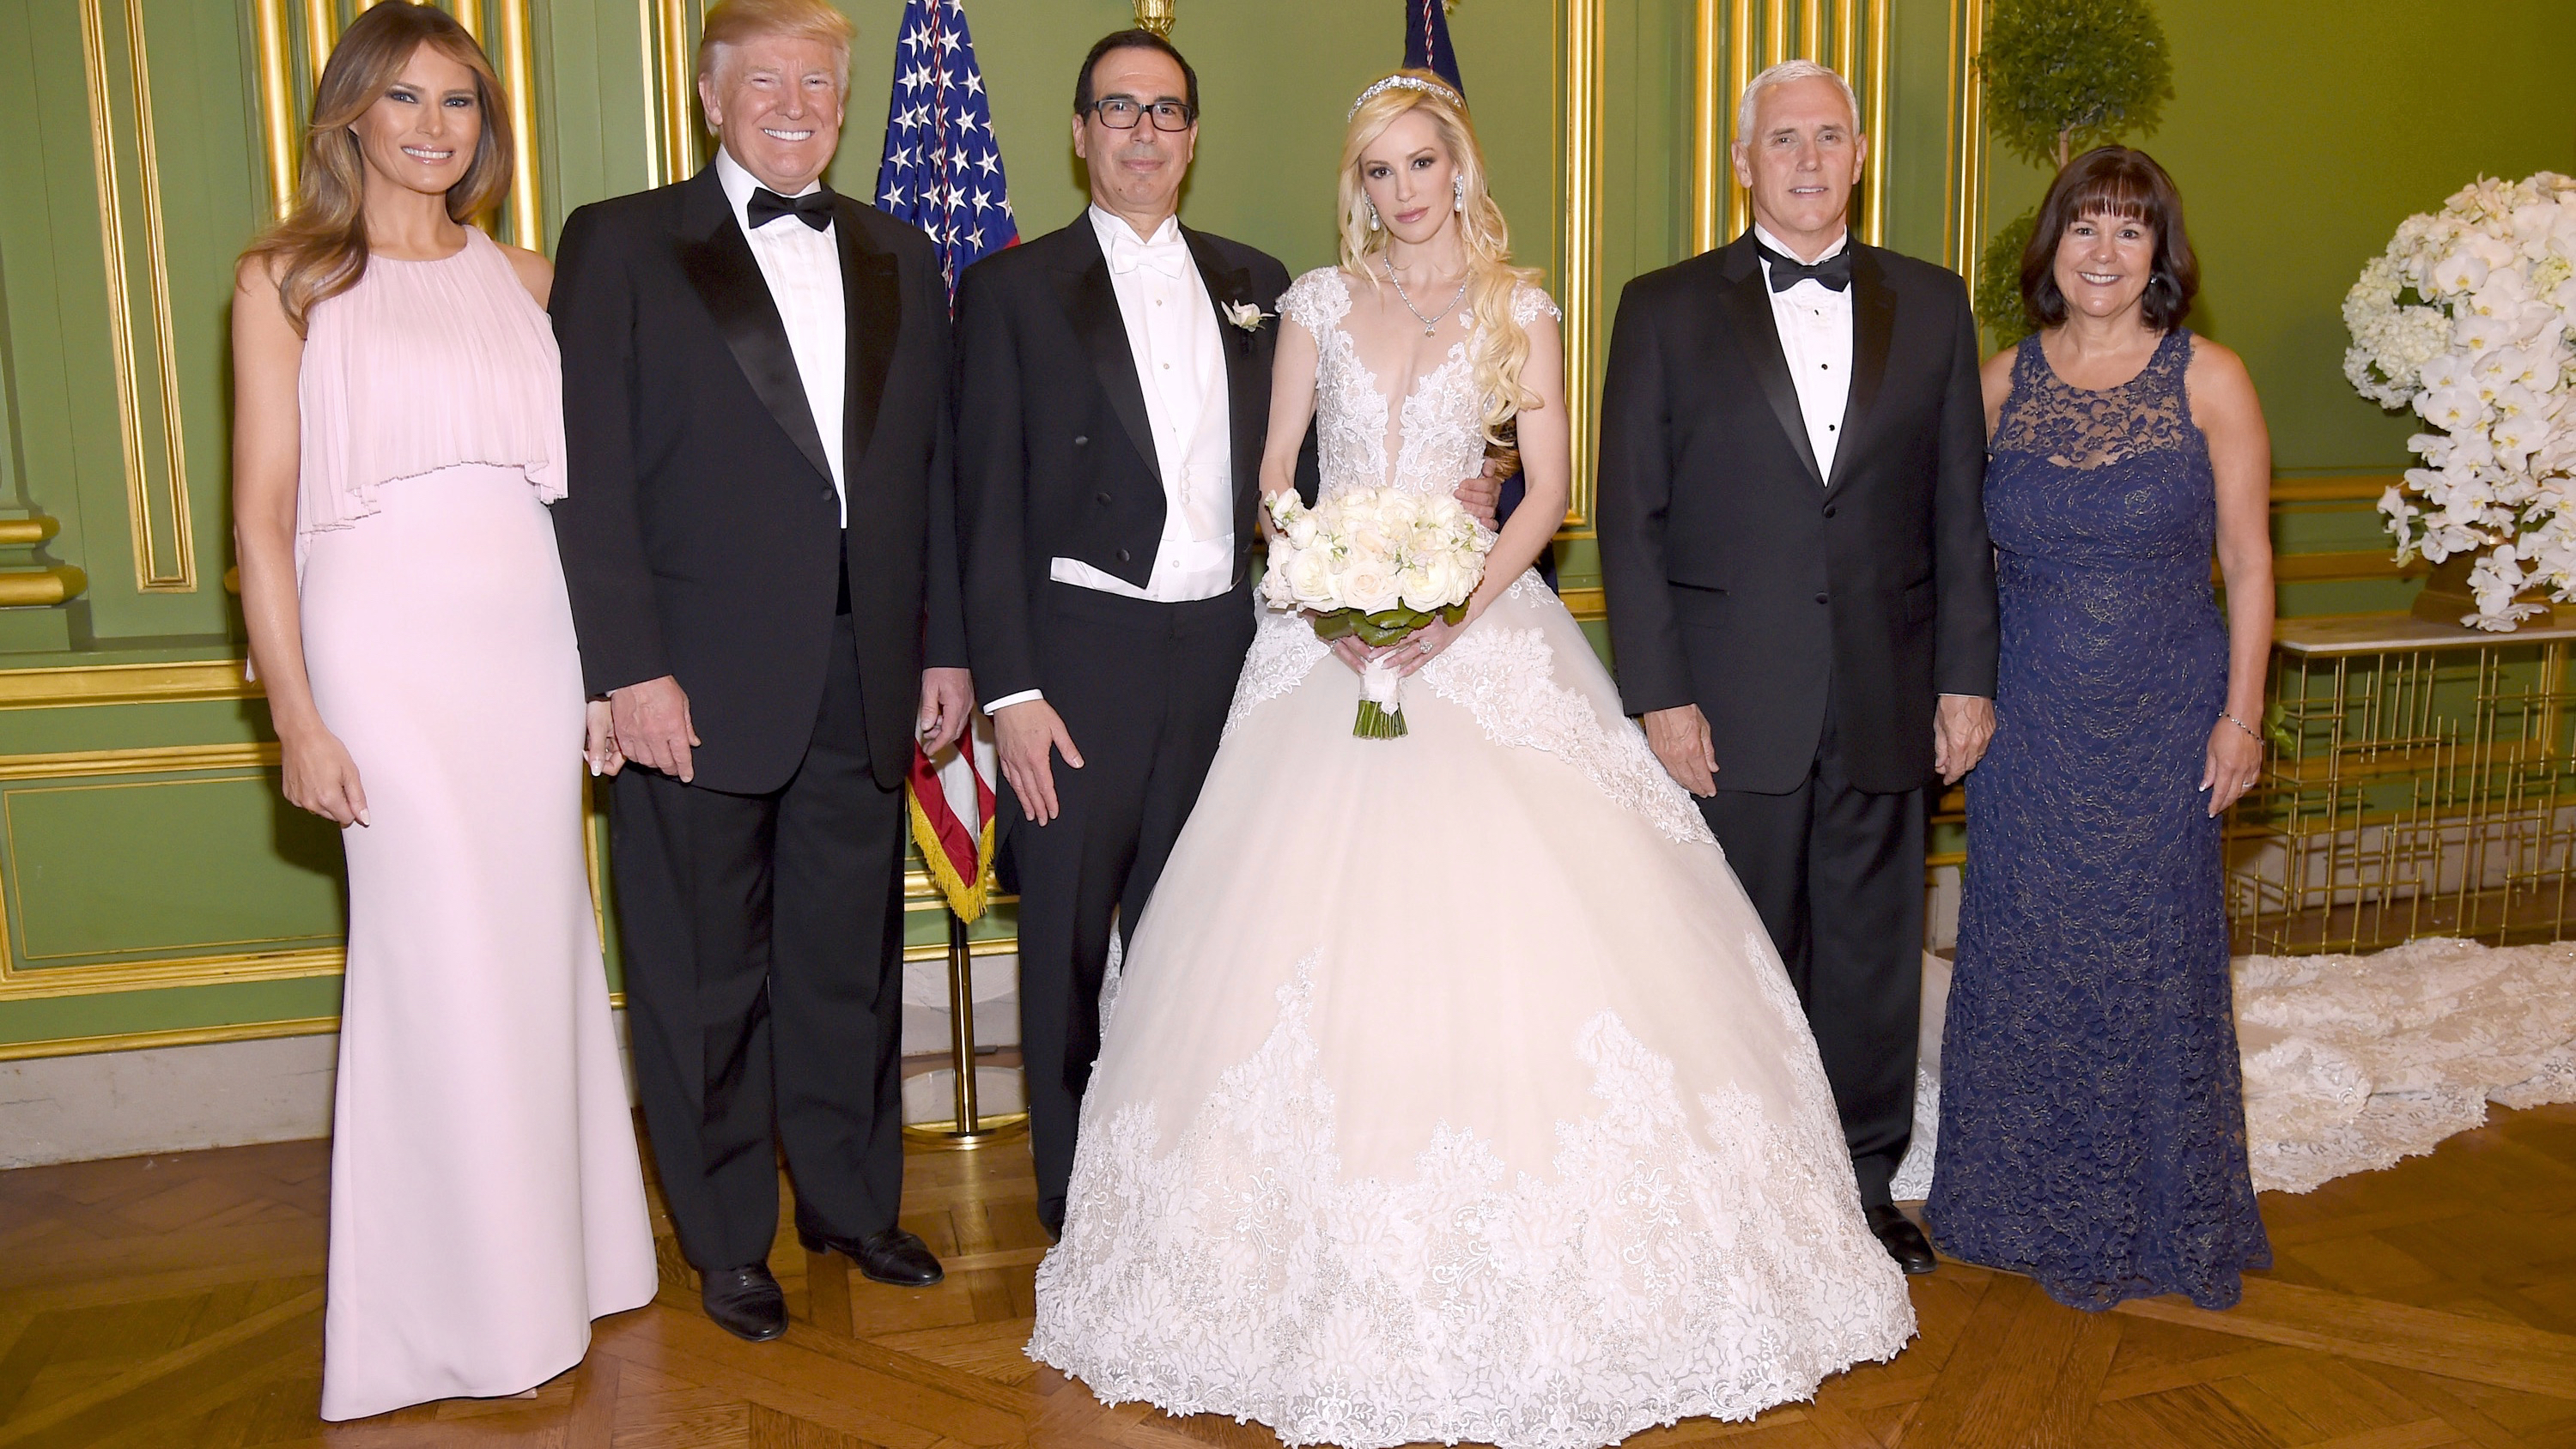 WASHINGTON, DC - JUNE 24: (Exclusive Coverage) (L-R) First Lady Melania Trump, President Donald Trump, Secretary of the Treasury Steven Mnuchin, Louise Linton, Vice President Mike Pence, and Second Lady Karen Pence pose at the wedding of Secretary of the Treasury Steven Mnuchin and Louise Linton on June 24, 2017 at Andrew Mellon Auditorium in Washington, DC. Louise Linton is wearing a custom Ines Di Santo gown with wedding ring and earrings by Martin Katz.  (Photo by Kevin Mazur/Getty Images for LS)